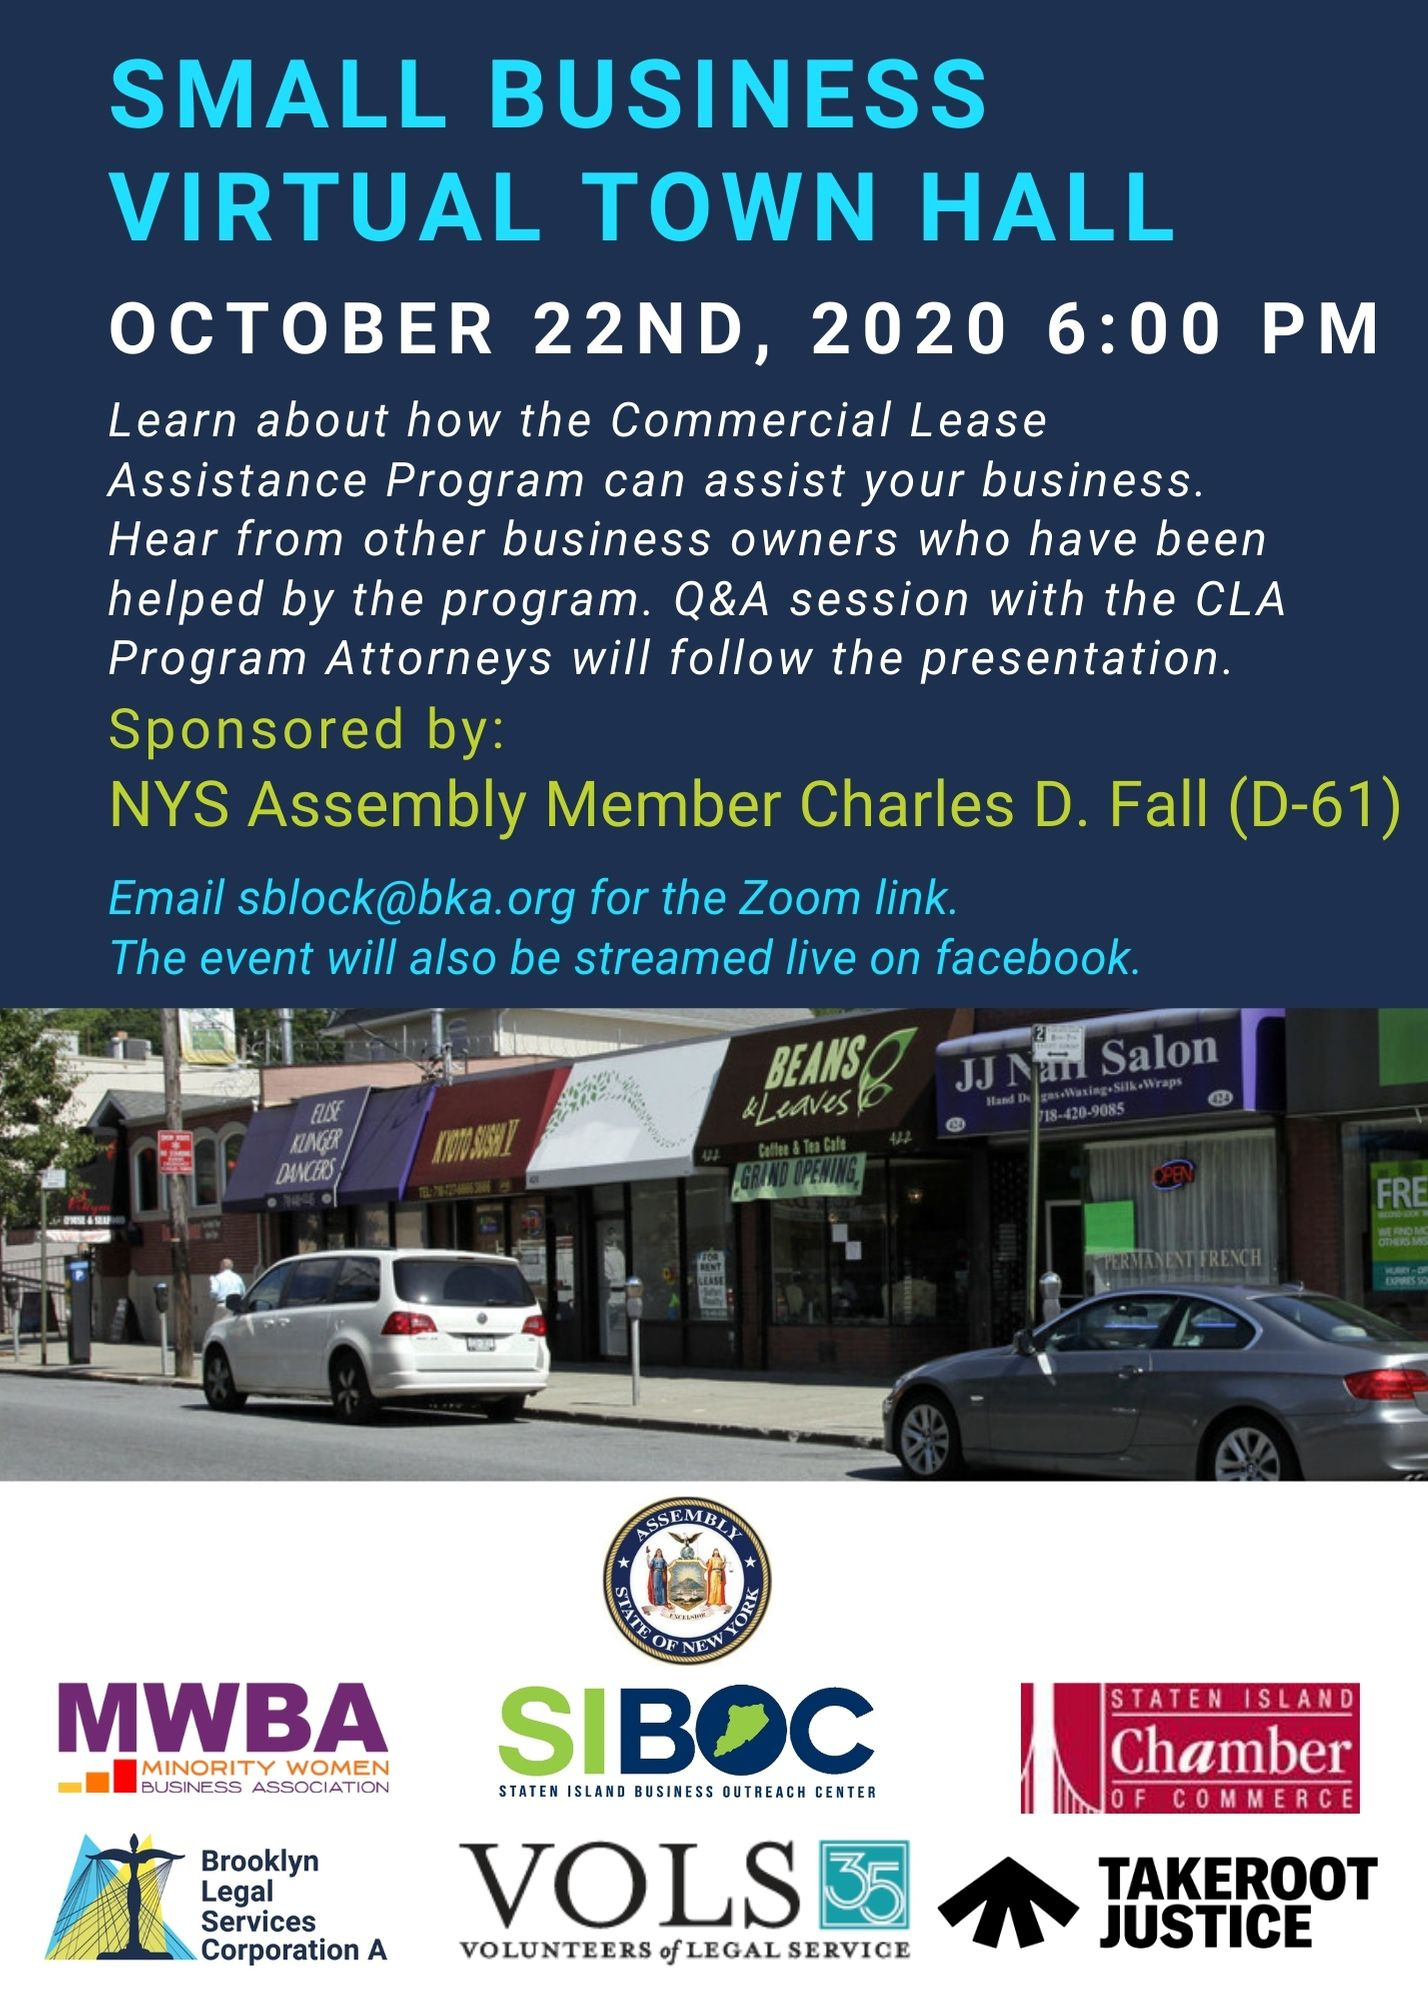 Town Hall: Small Business Virtual Town Hall – October 22nd, 2020 At 6 Pm